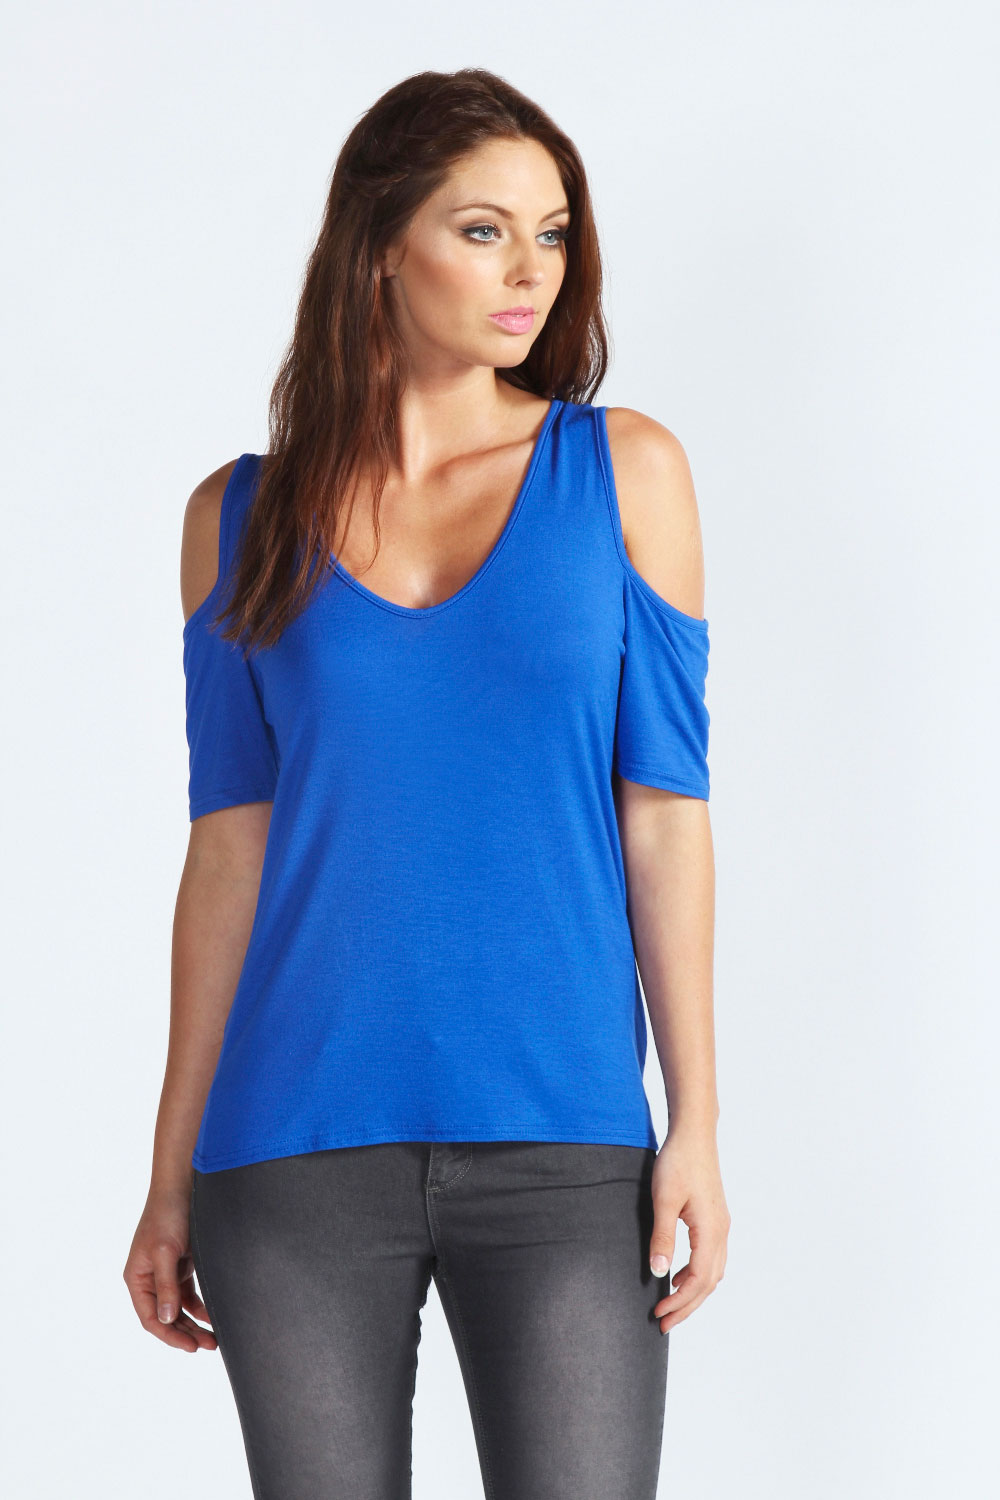 749cd9758b7fc Shop for cold shoulder tops at neyschelethel.ga Free Shipping. Free  Returns. All